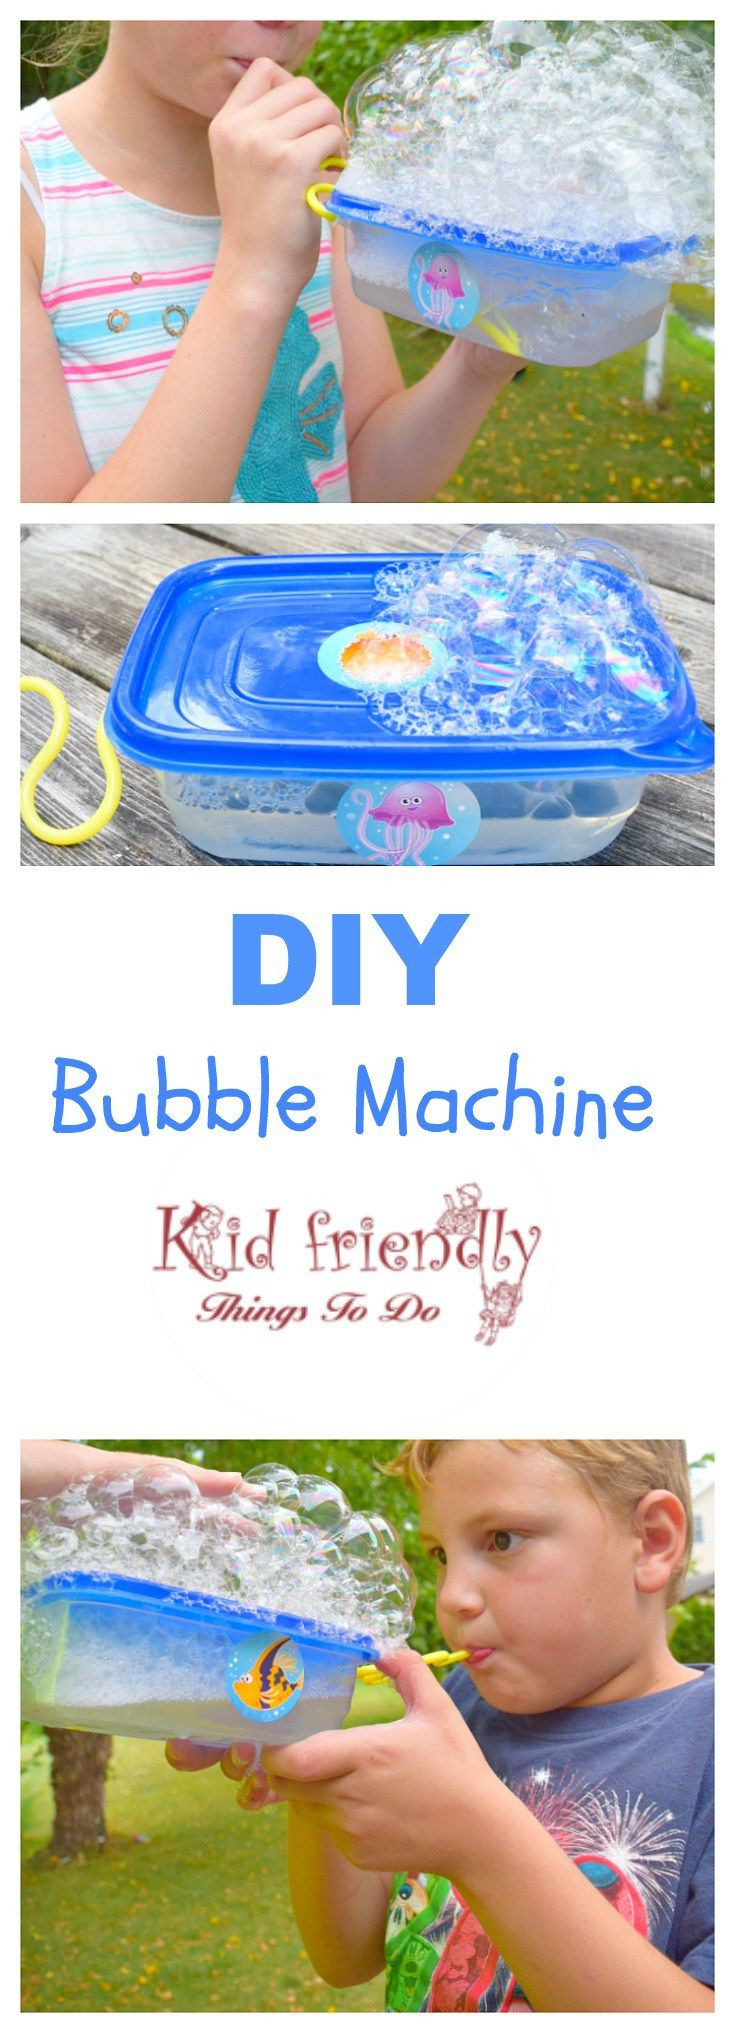 DIY Bubble Making Machine for Kids to Play With - The kids can't get enough of these! Great for parties or summer fun! KidFriendlyThingsToDo.com